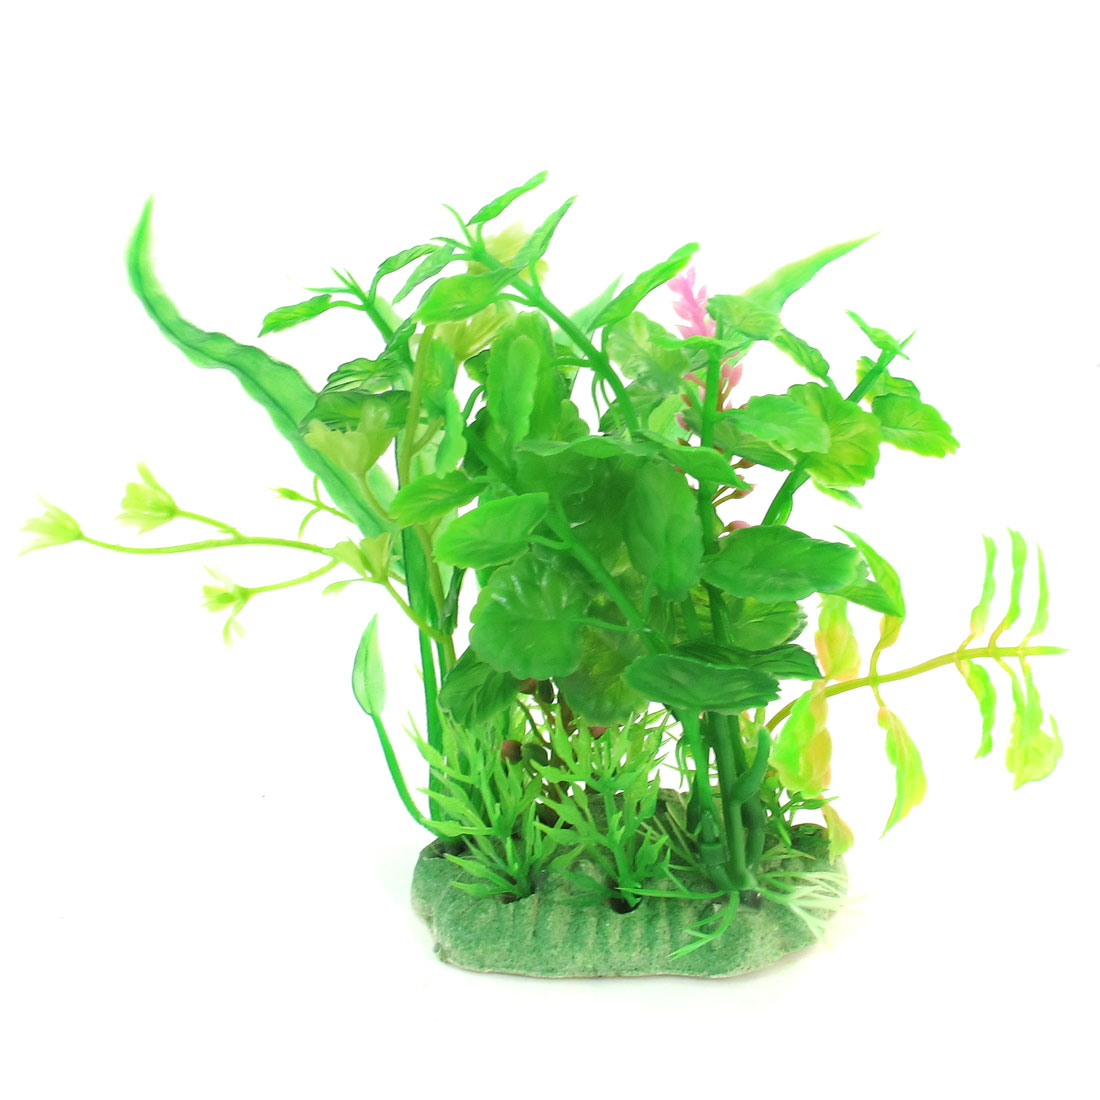 "5.1"" Height Aquarium Green Grass Plastic Plants Decoration for Fish Tank"